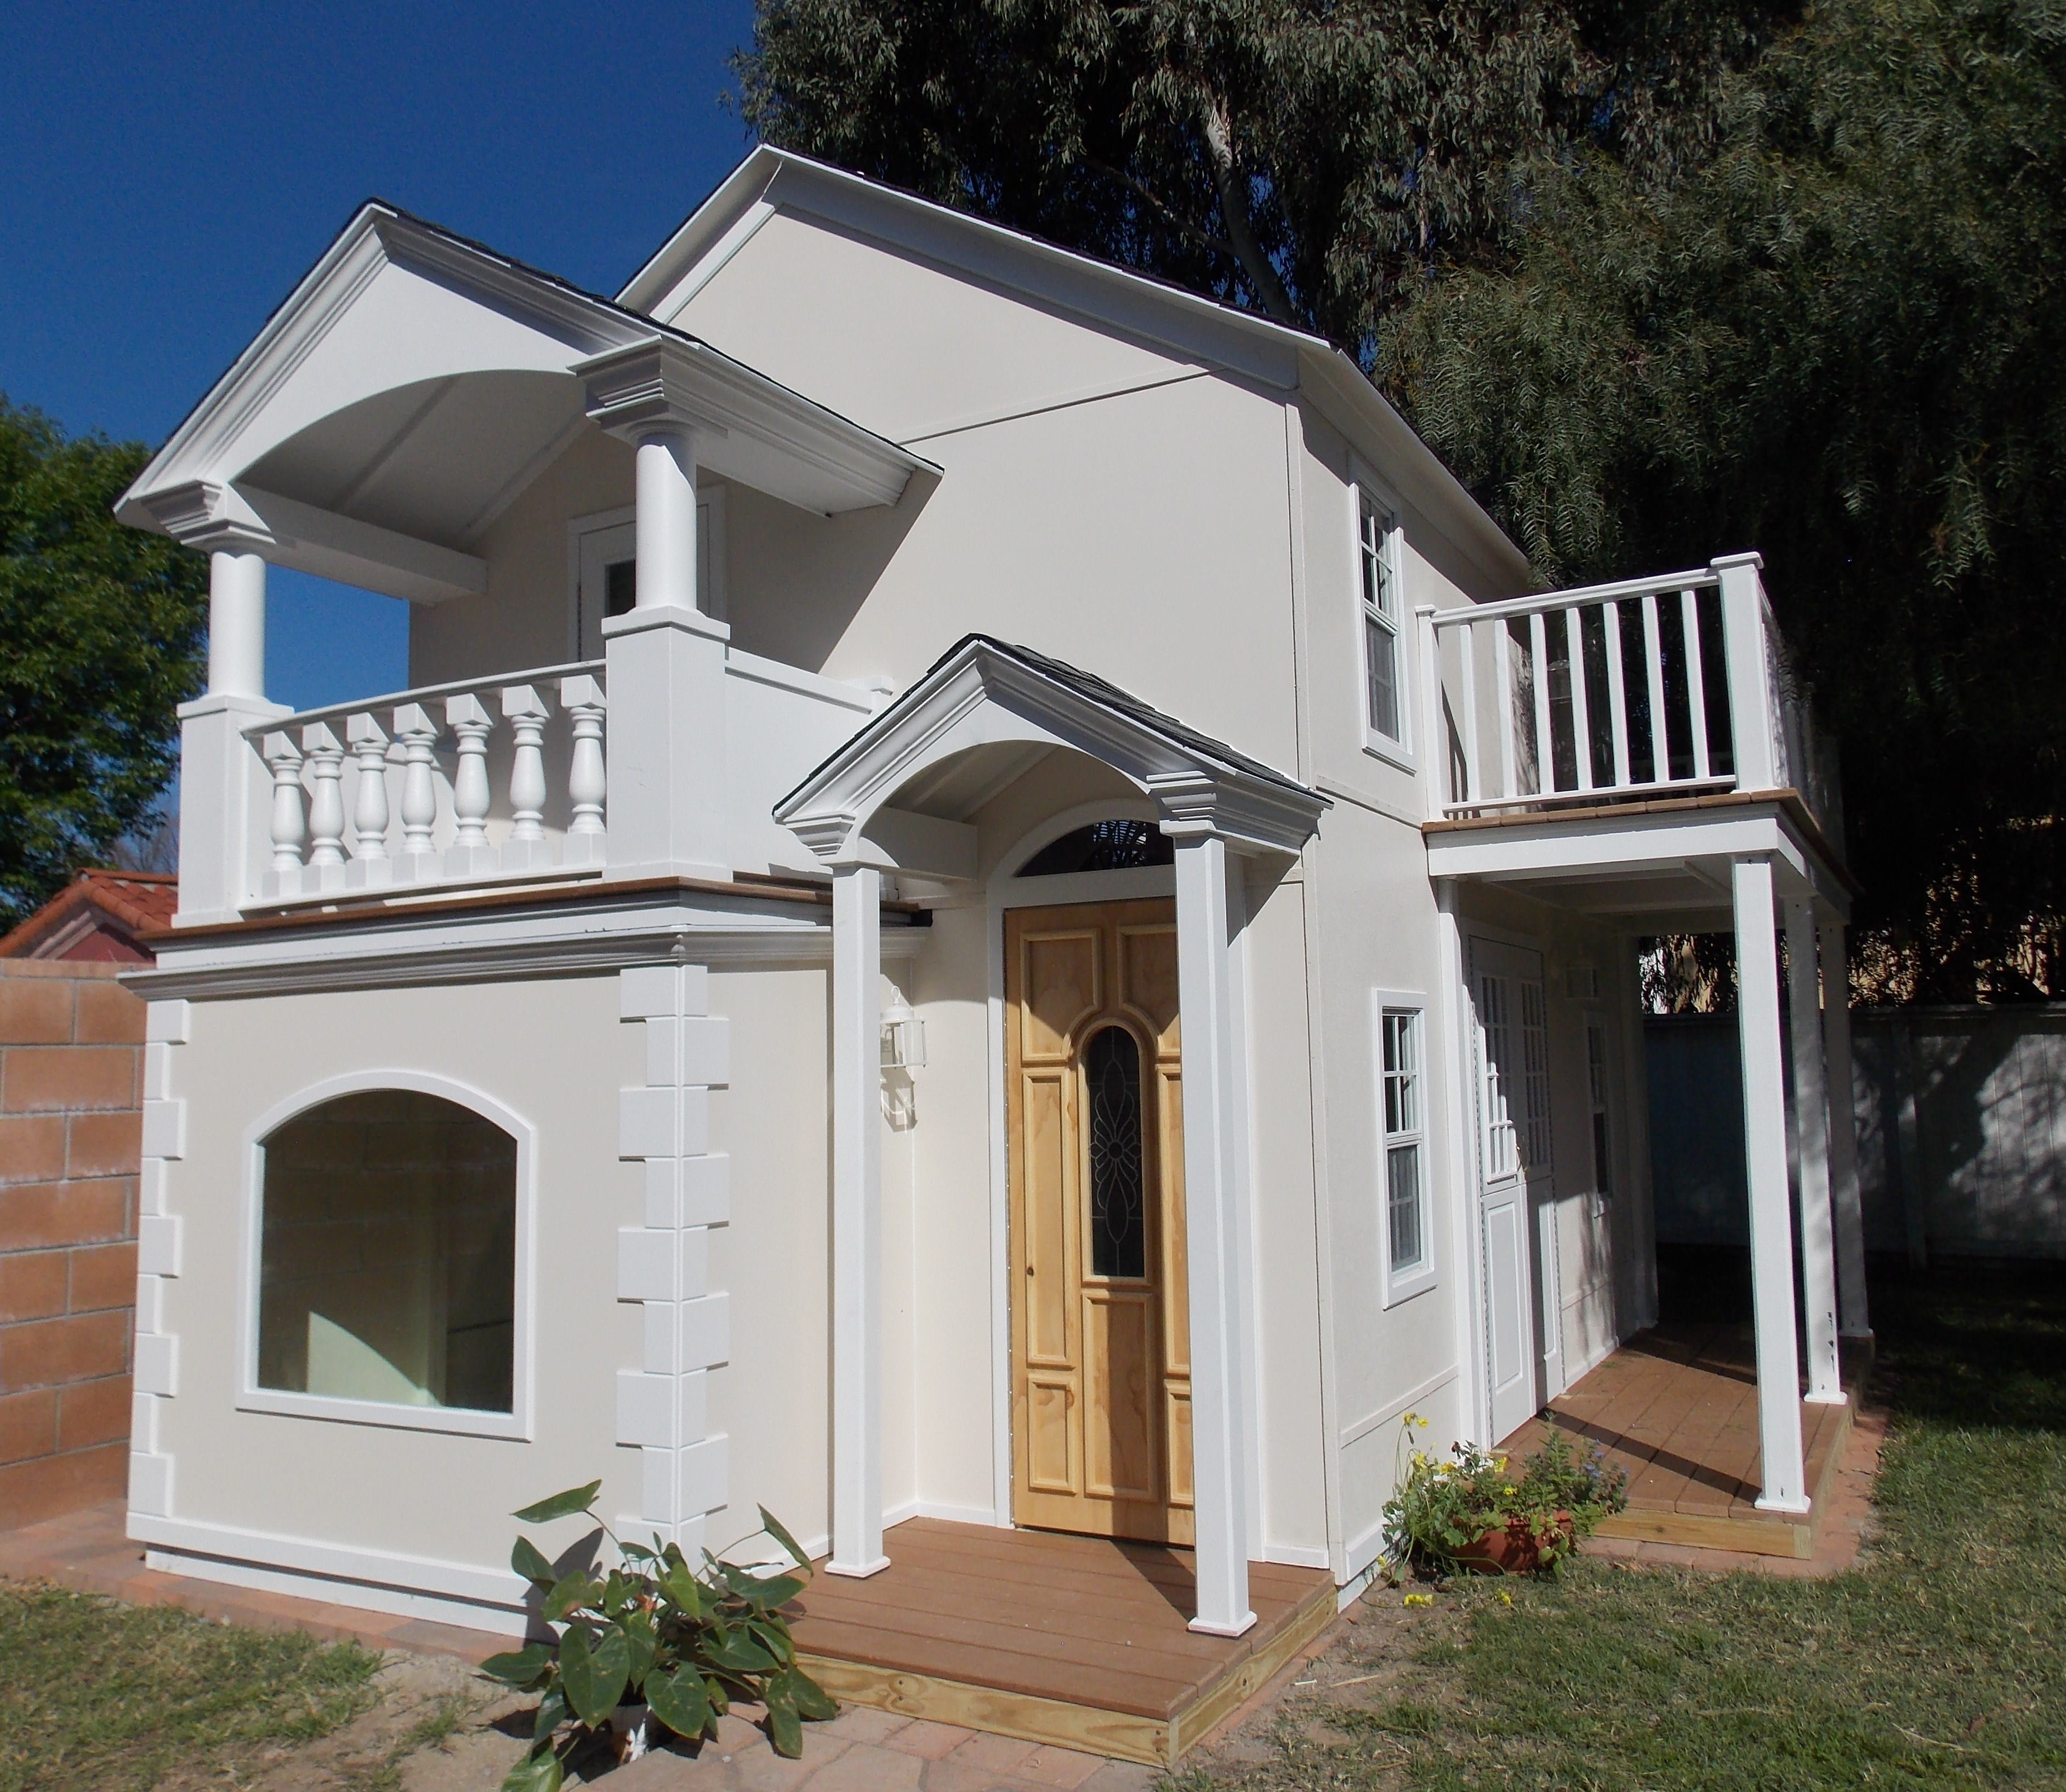 Custom Playhouses For Your